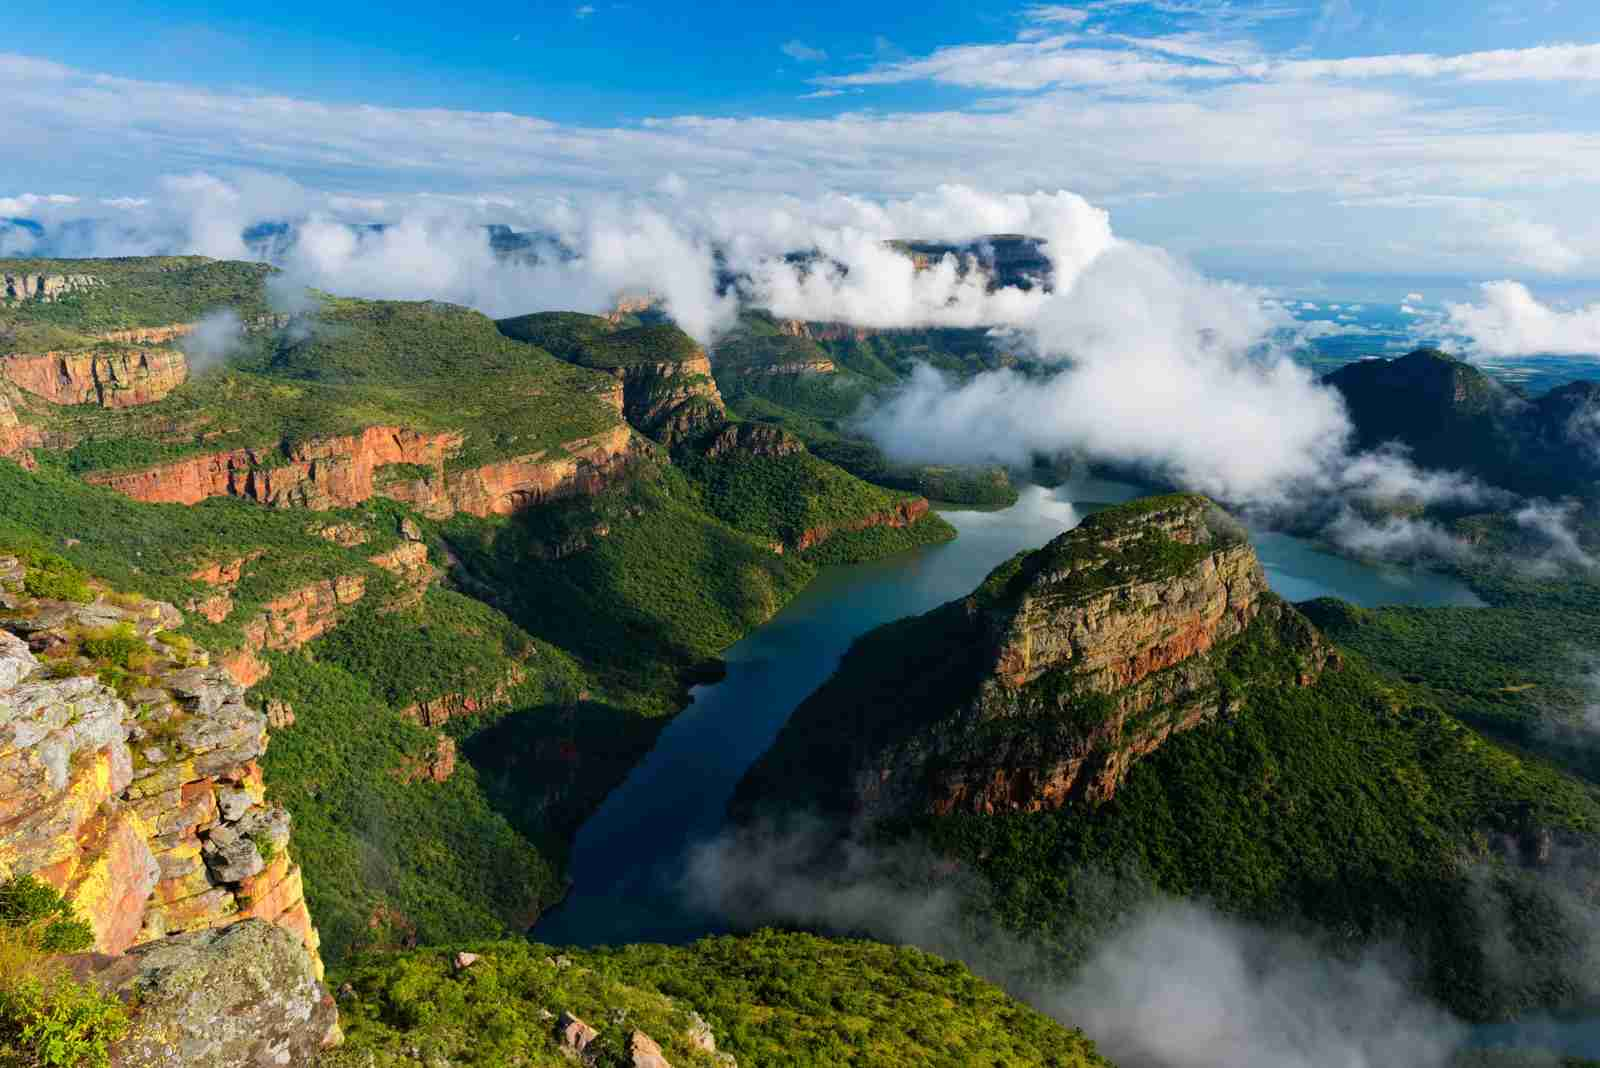 Blyde River Canyon in Mpumalanga, South Africa. (Photo by Hougaard Malan Photography/Getty Images)